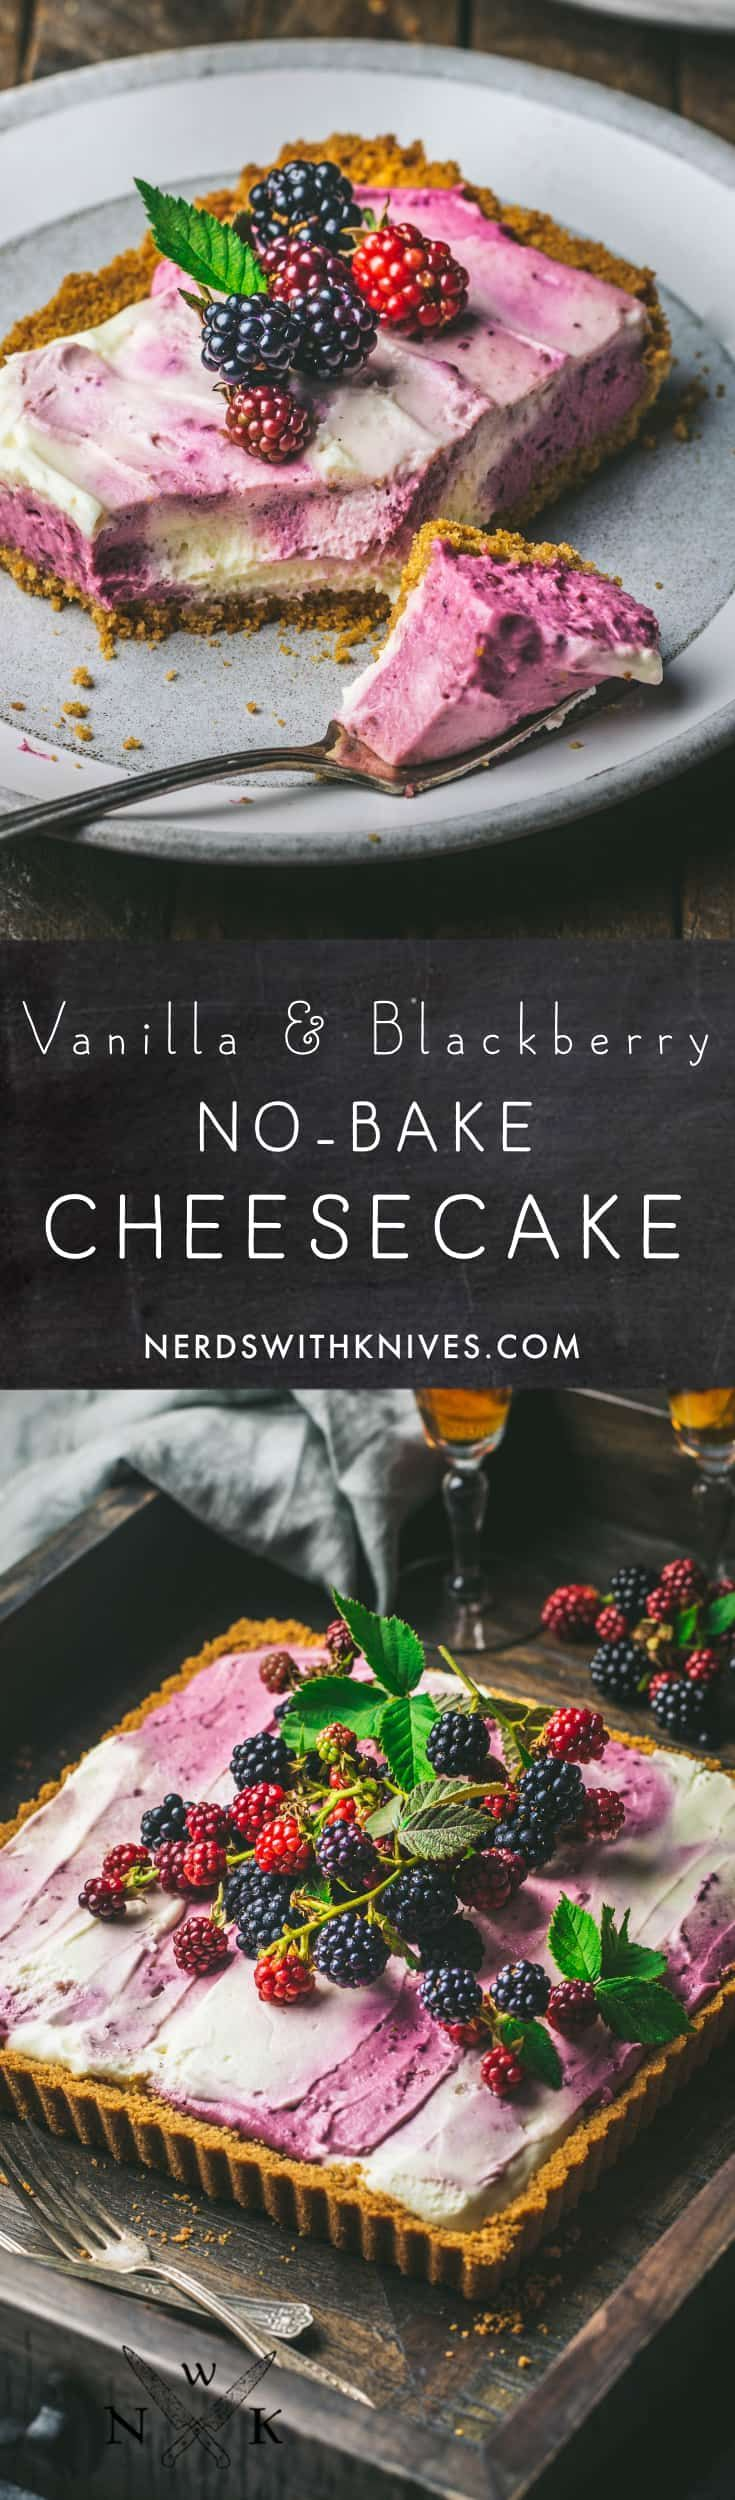 Half-Baked Blackberry-Vanilla Swirl Cheesecake A no-bake cheesecake with swirls of whipped vanilla and blackberry batters. An easy, delicious and beautiful dessert.